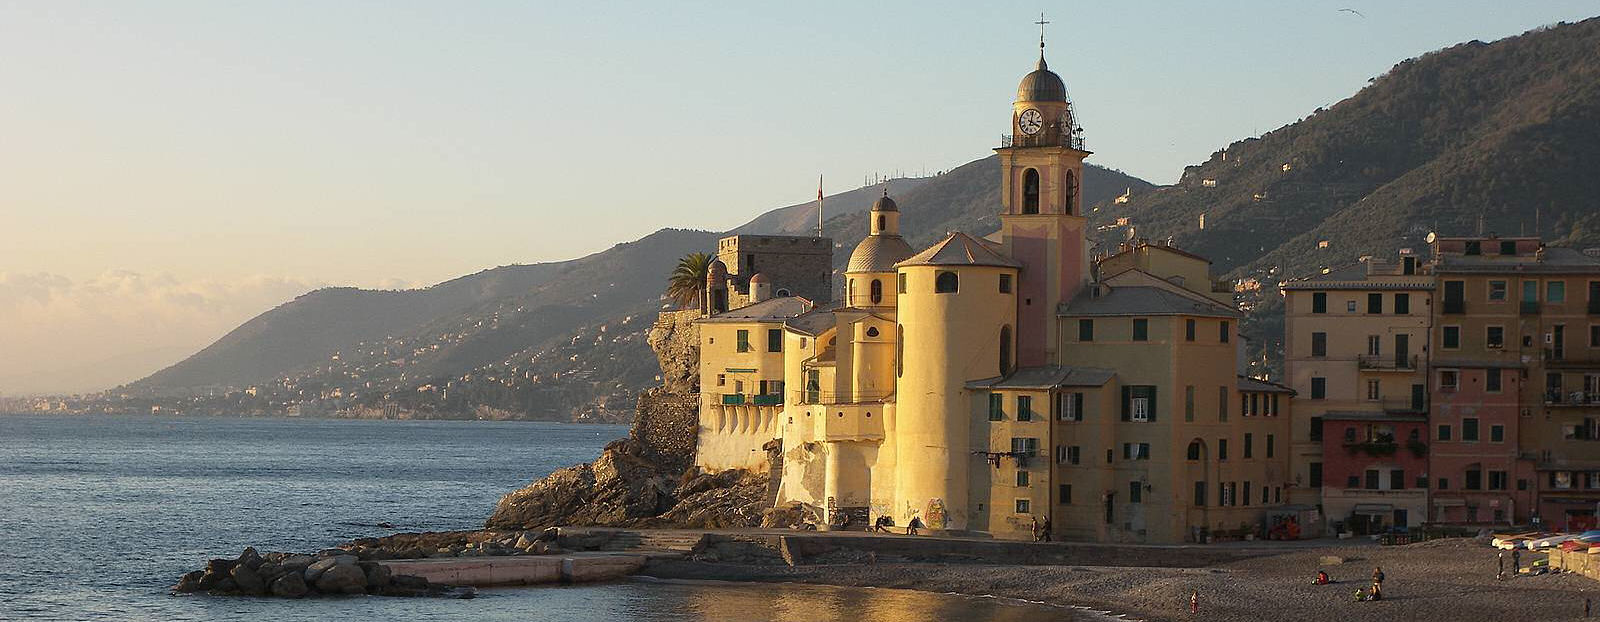 Camogli-church-Liguria-beach1